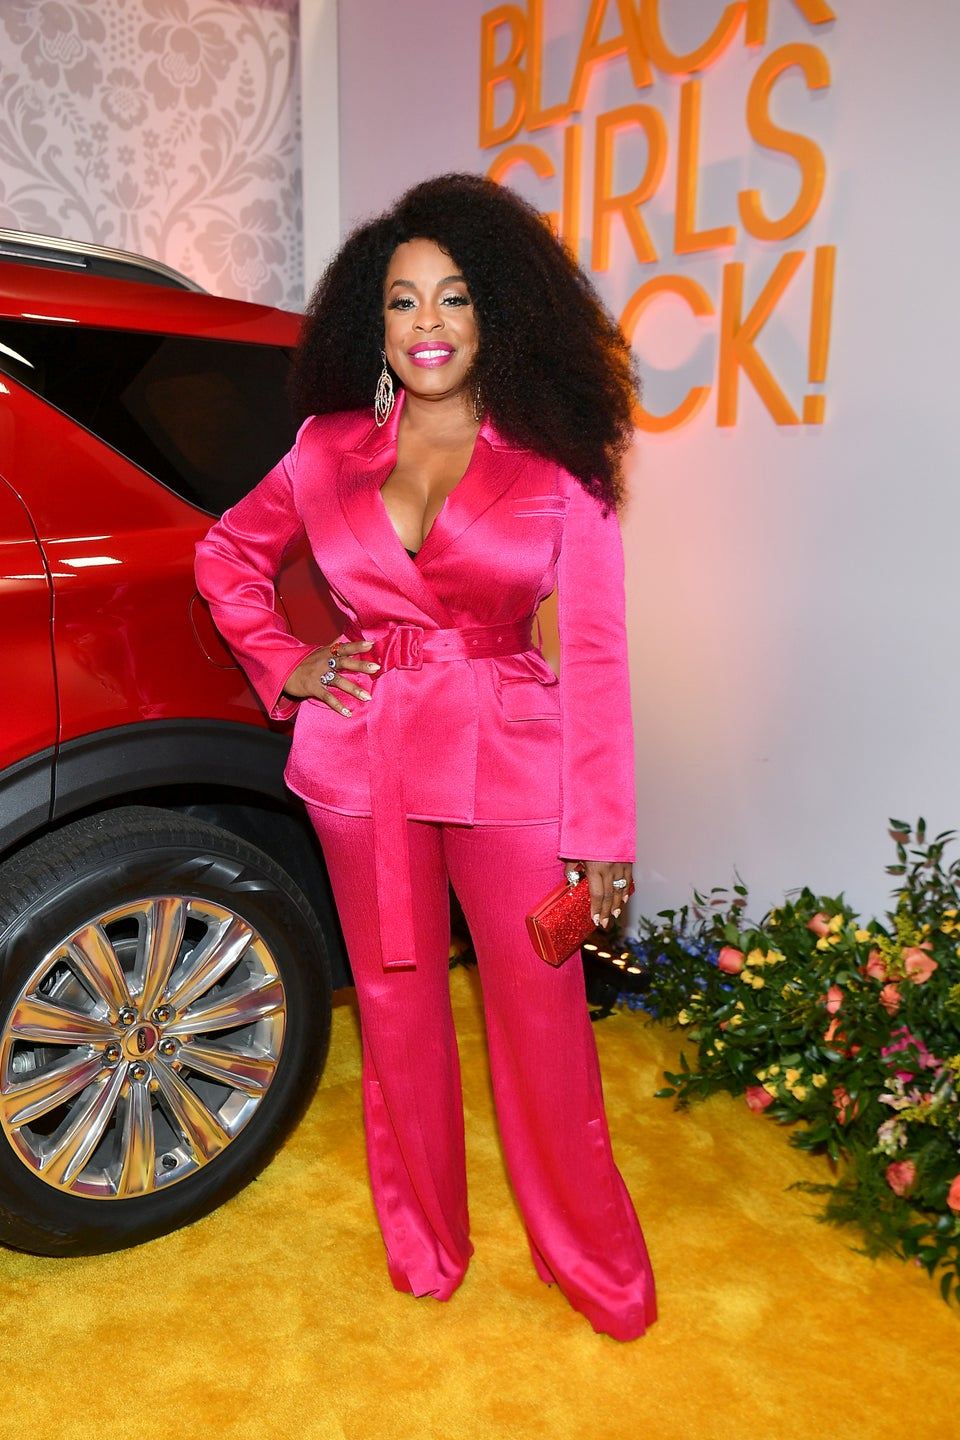 Niecy Nash's Hot Pink Suit Has Us Shook – Here's Where To Buy It